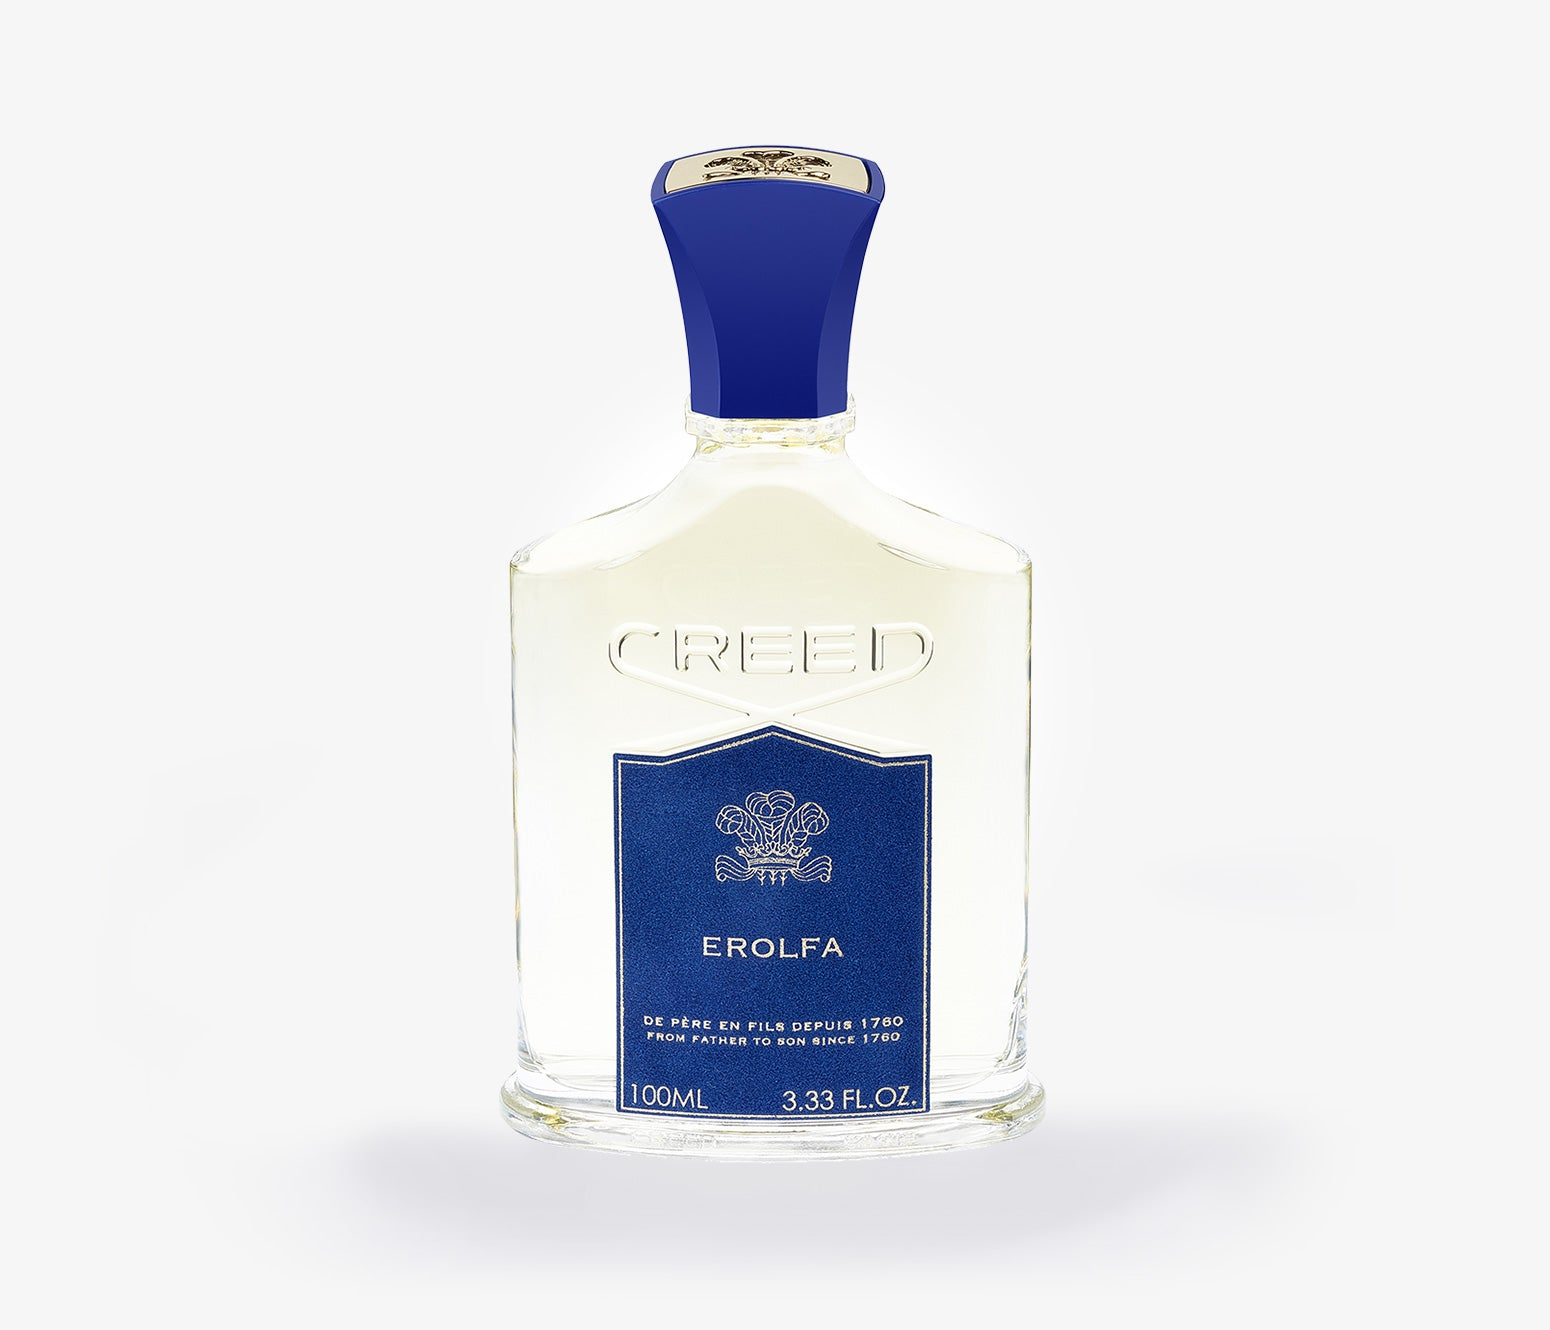 Creed - Erolfa - 100ml - '10000529 - Product Image - Fragrance - Les Senteurs